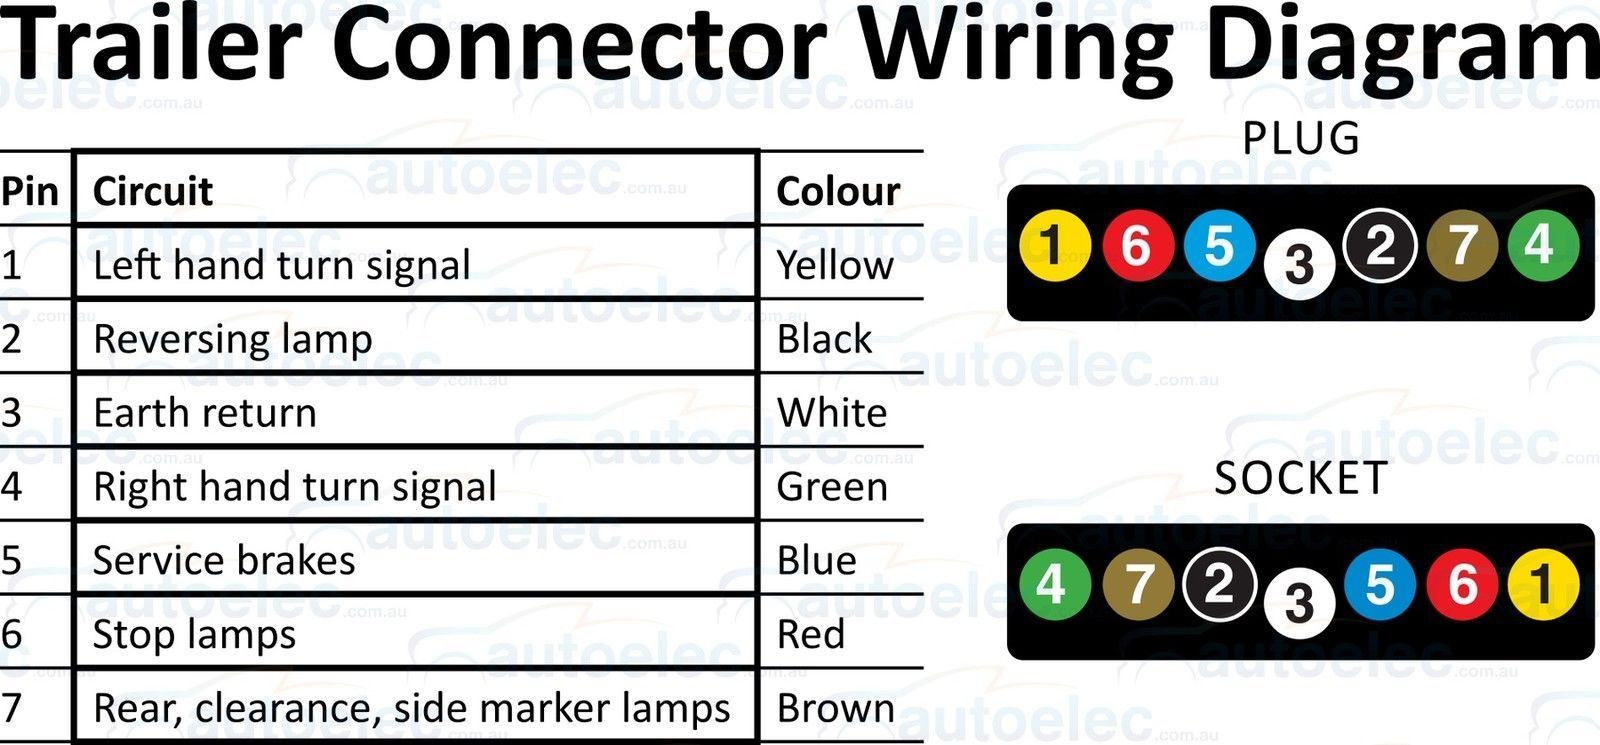 Images Of 7 Prong Wiring Diagram For Trailer Diagrams In 6 - Trailer Receptacle Wiring Diagram